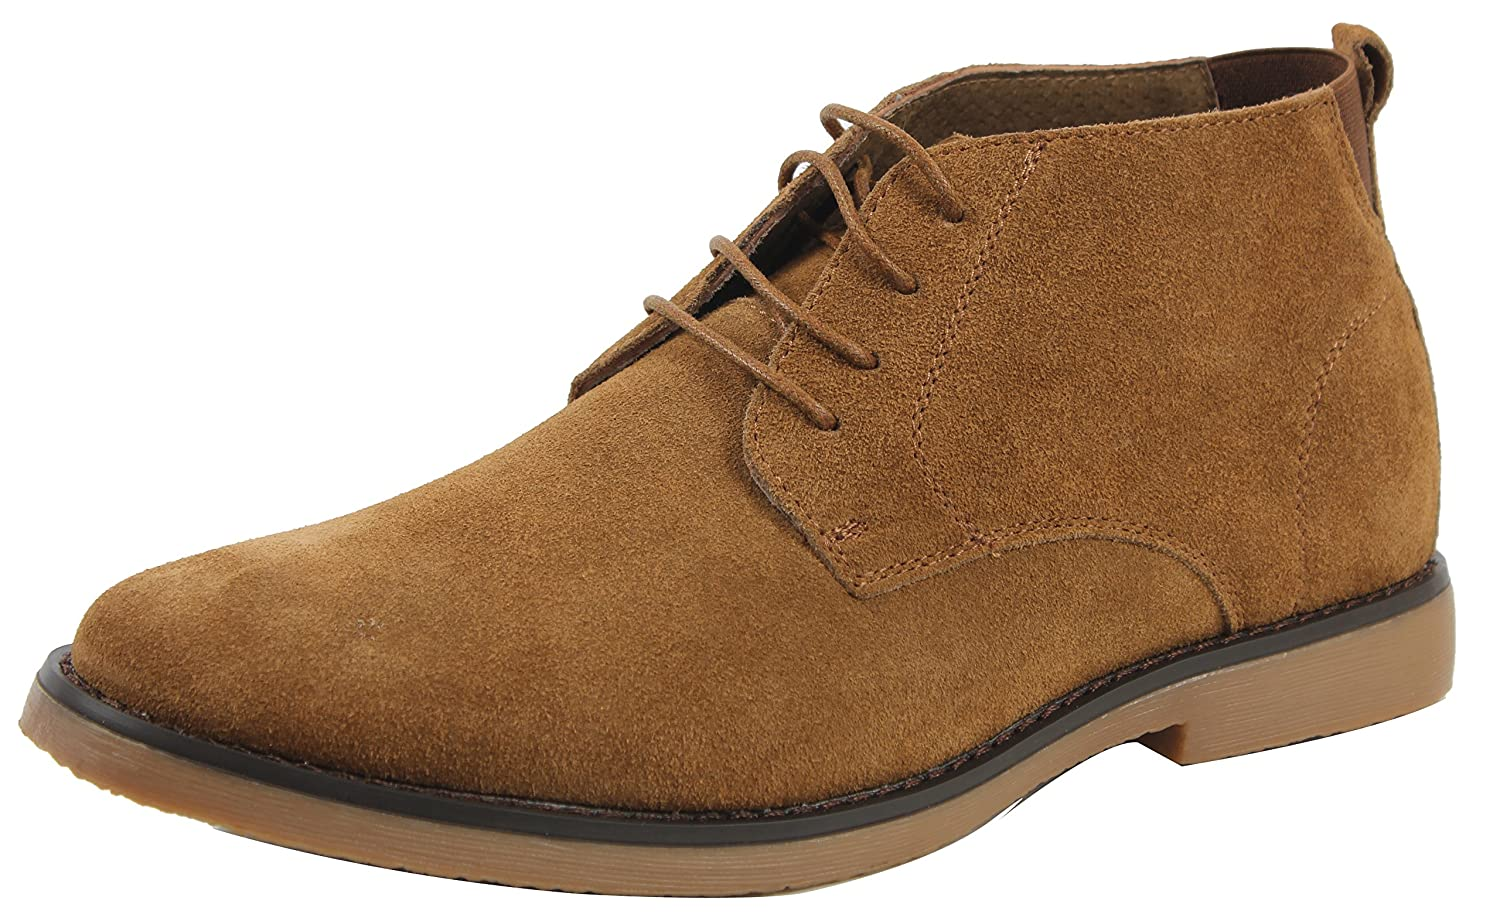 MAH Men's Chukka Suede Leather High Top Lace Up Chukka Boot